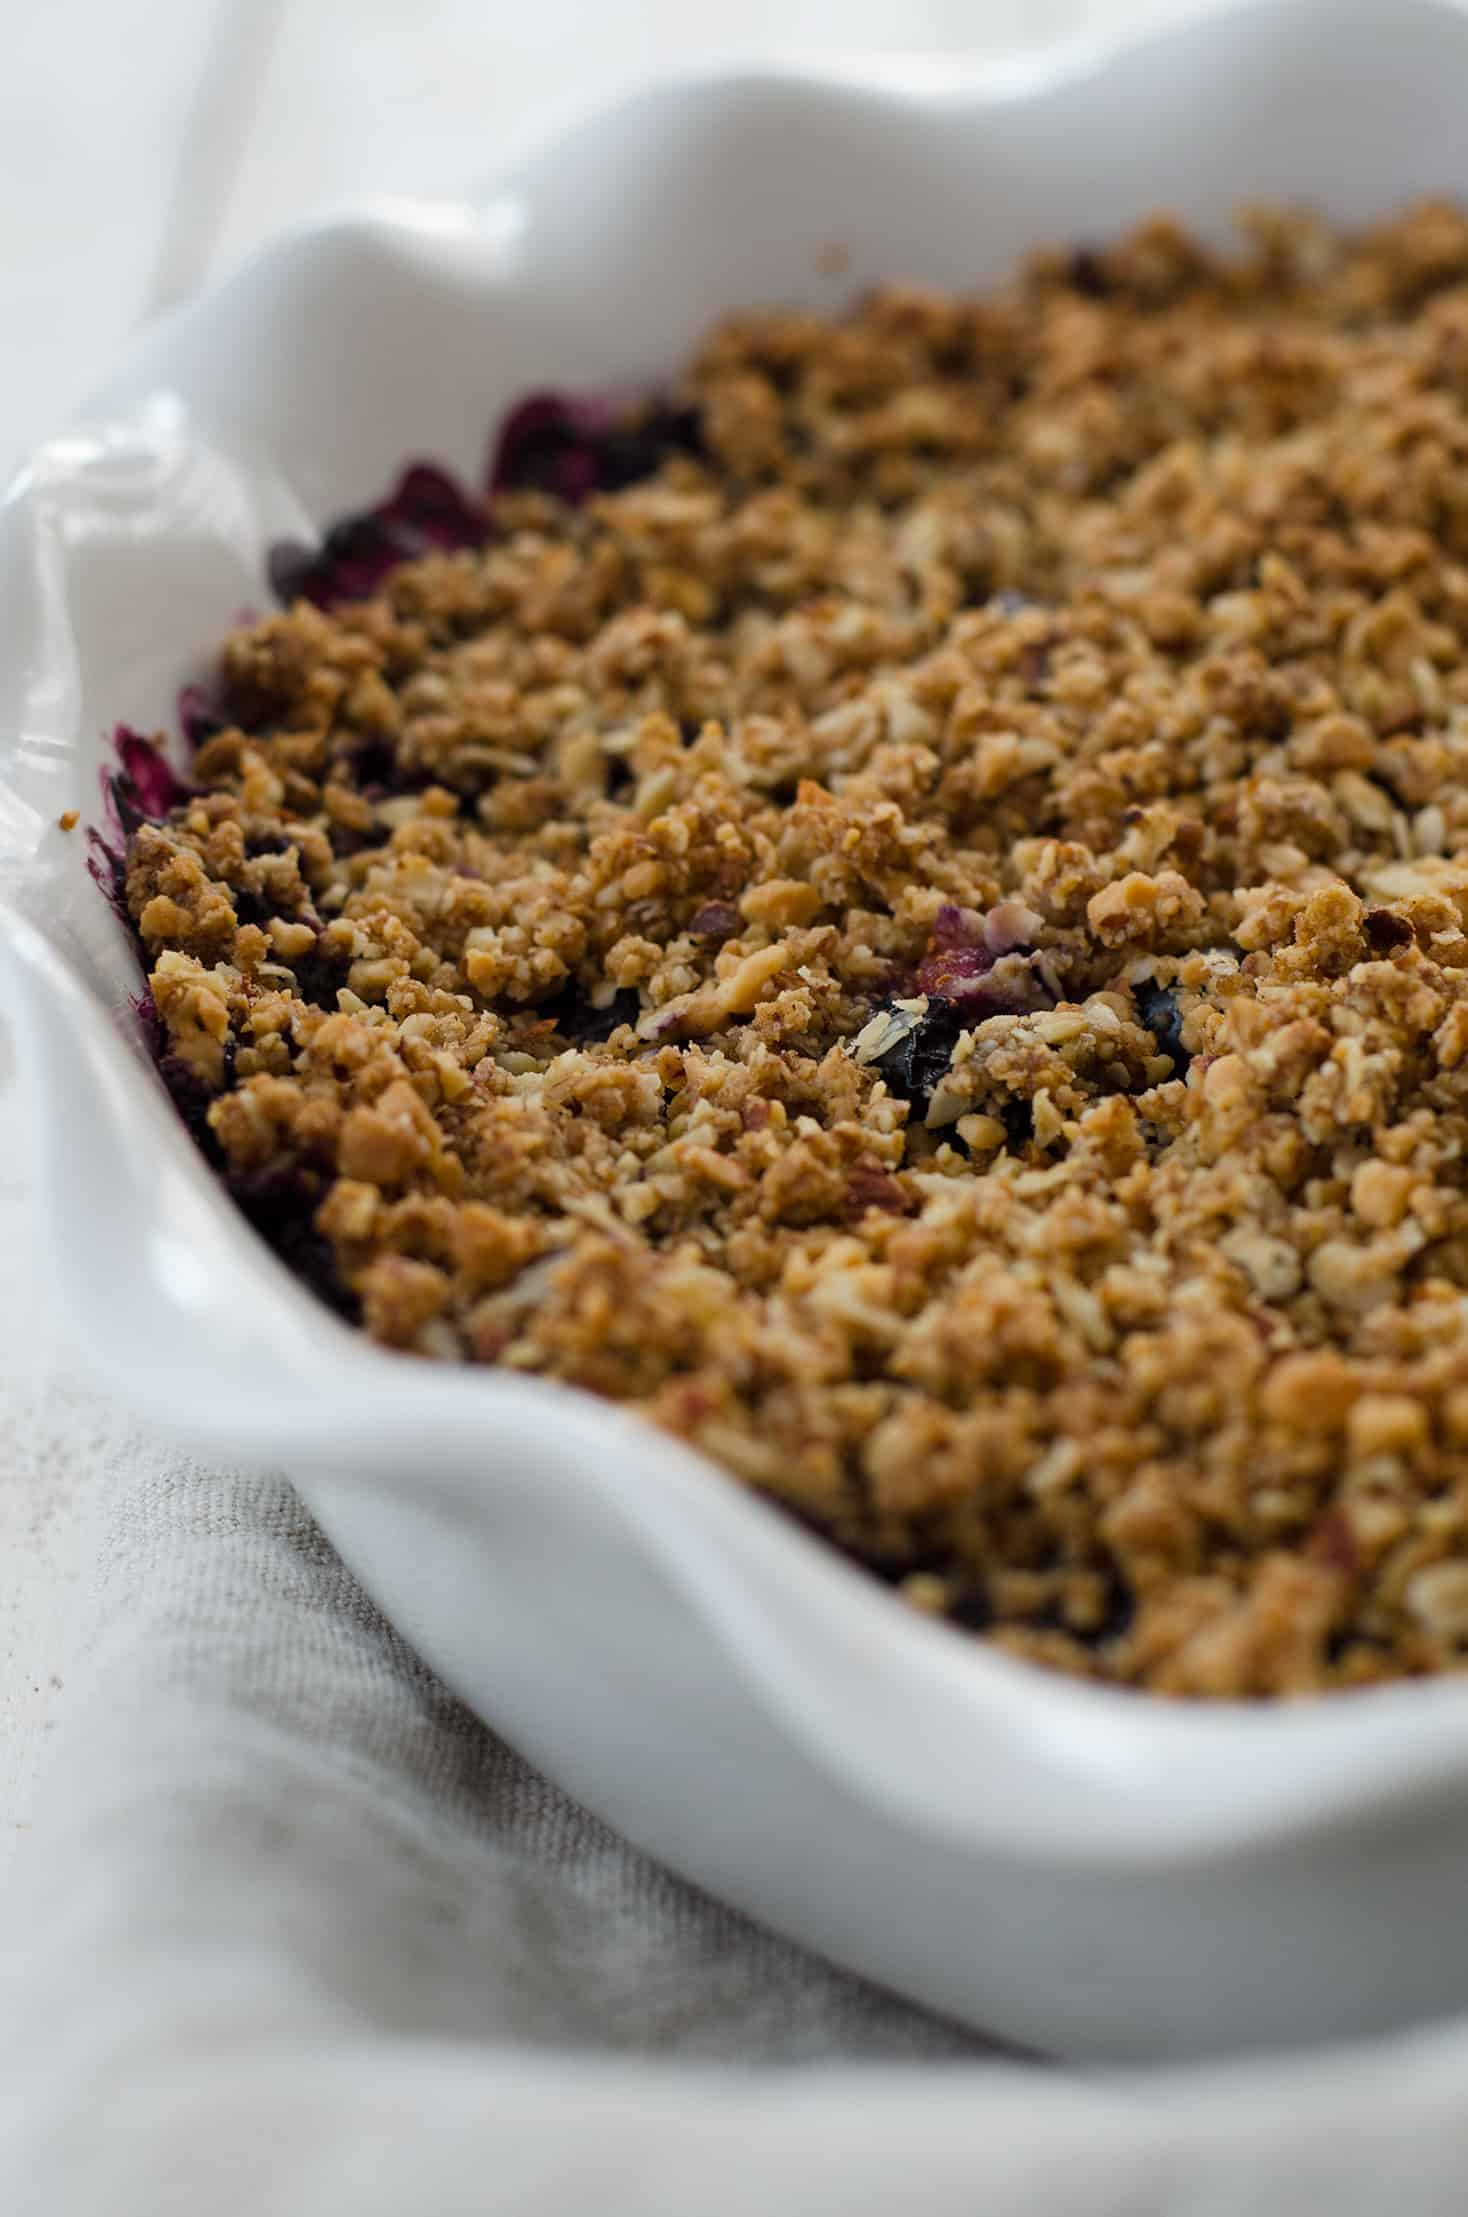 Vegan Blueberry Almond Crisp! Oat and Almond Blueberry crisp, perfect for summer! Easily gluten-free. | www.delishknowledge.com